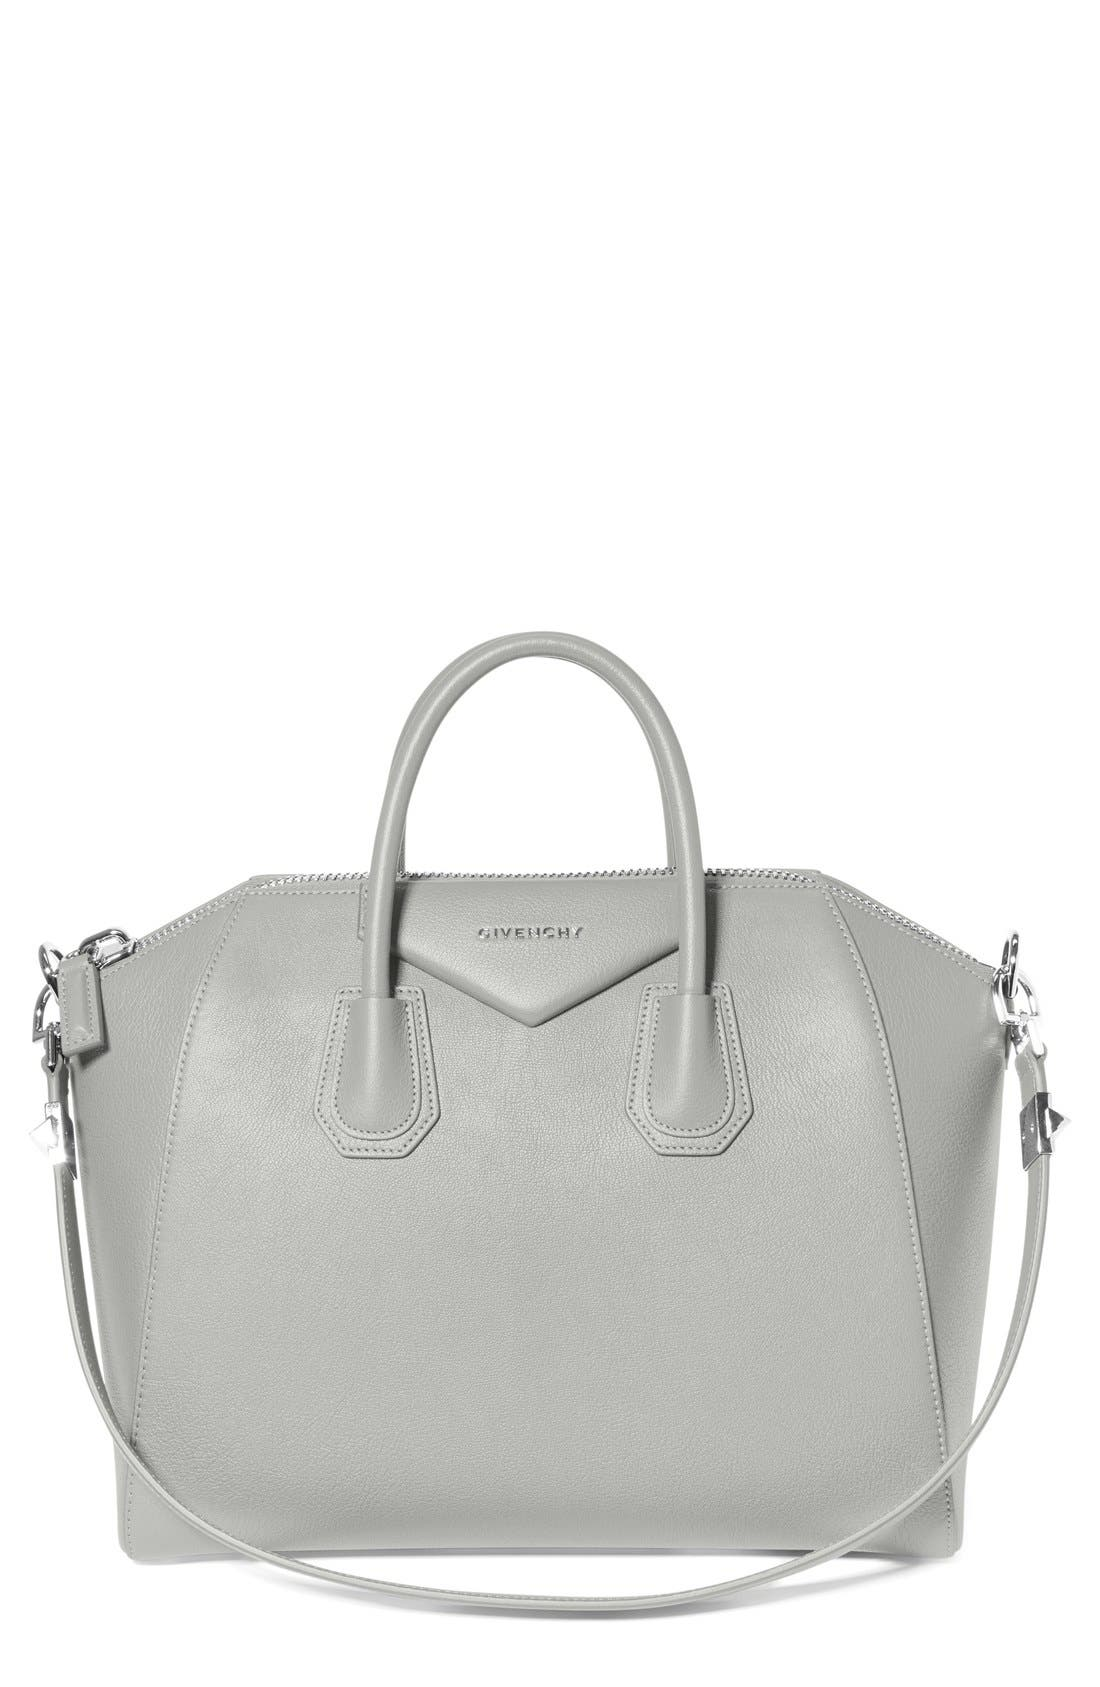 'Medium Antigona' Sugar Leather Satchel,                             Main thumbnail 1, color,                             PEARL GREY